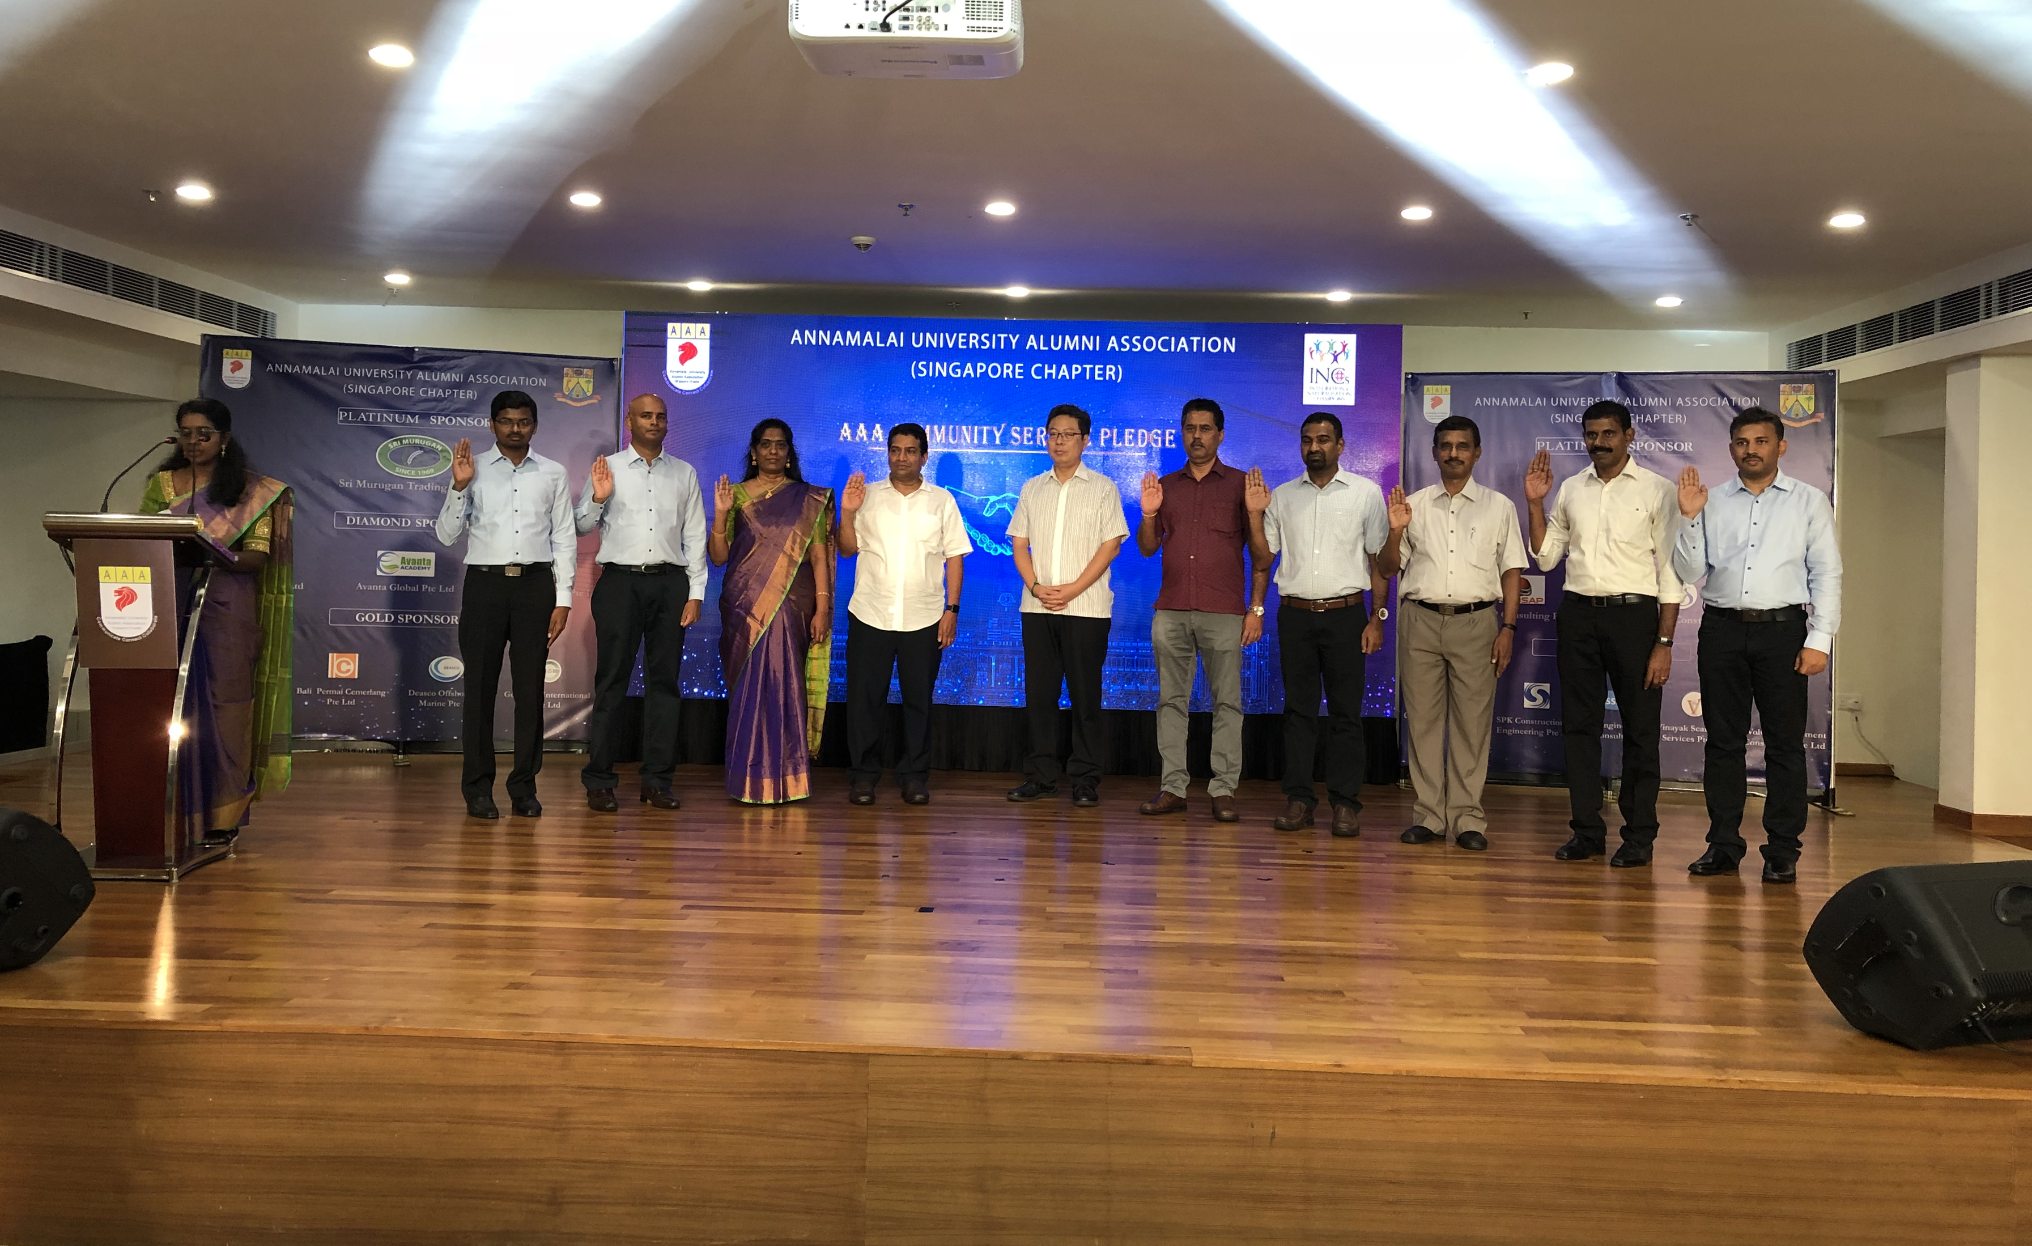 Members of the Annamalai University Alumni Association (AAA) pledged 1,000 hours of voluntary community service with the People's Association Integration Council. Photo: Connected to India